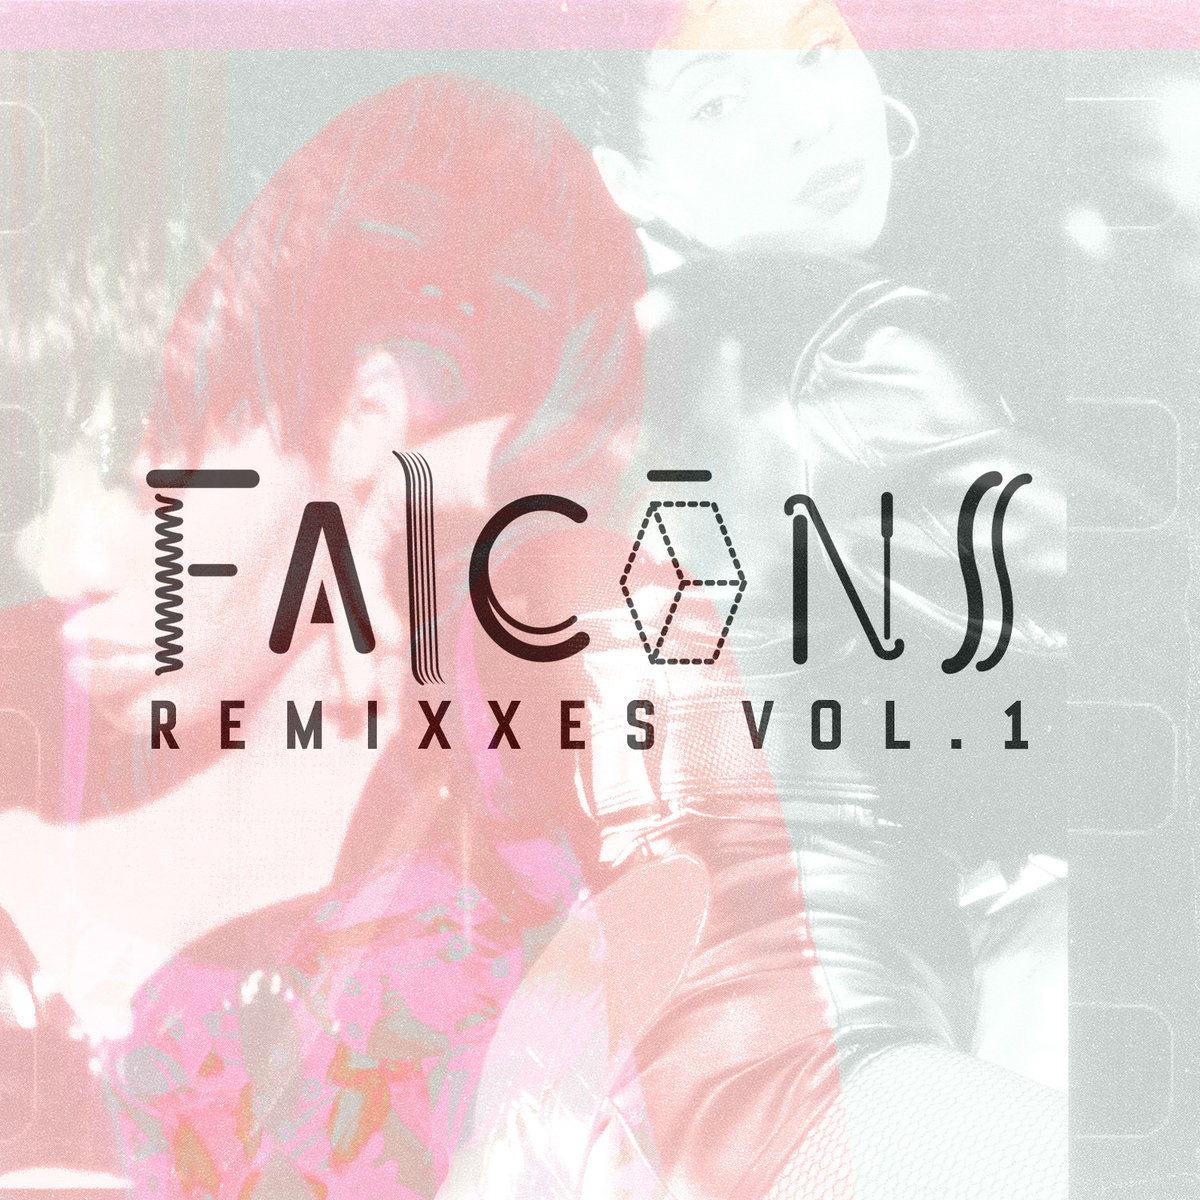 Remixxes Vol 1